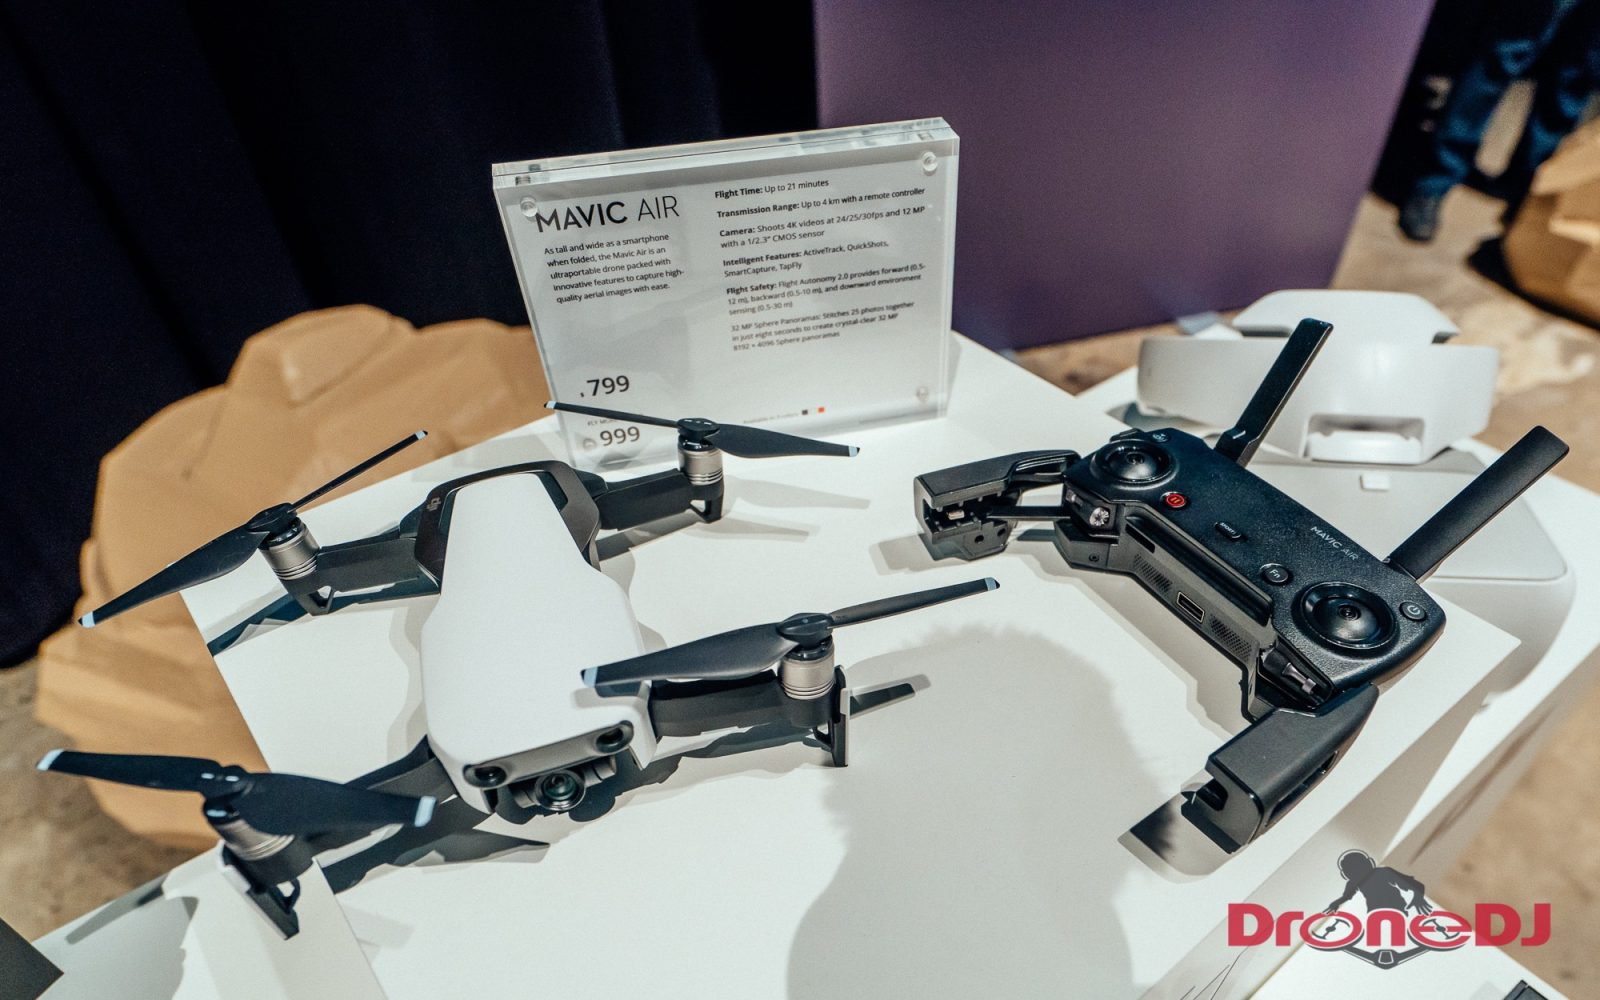 DJI Mavic Air - A foldable drone with 4k video - DroneDJ